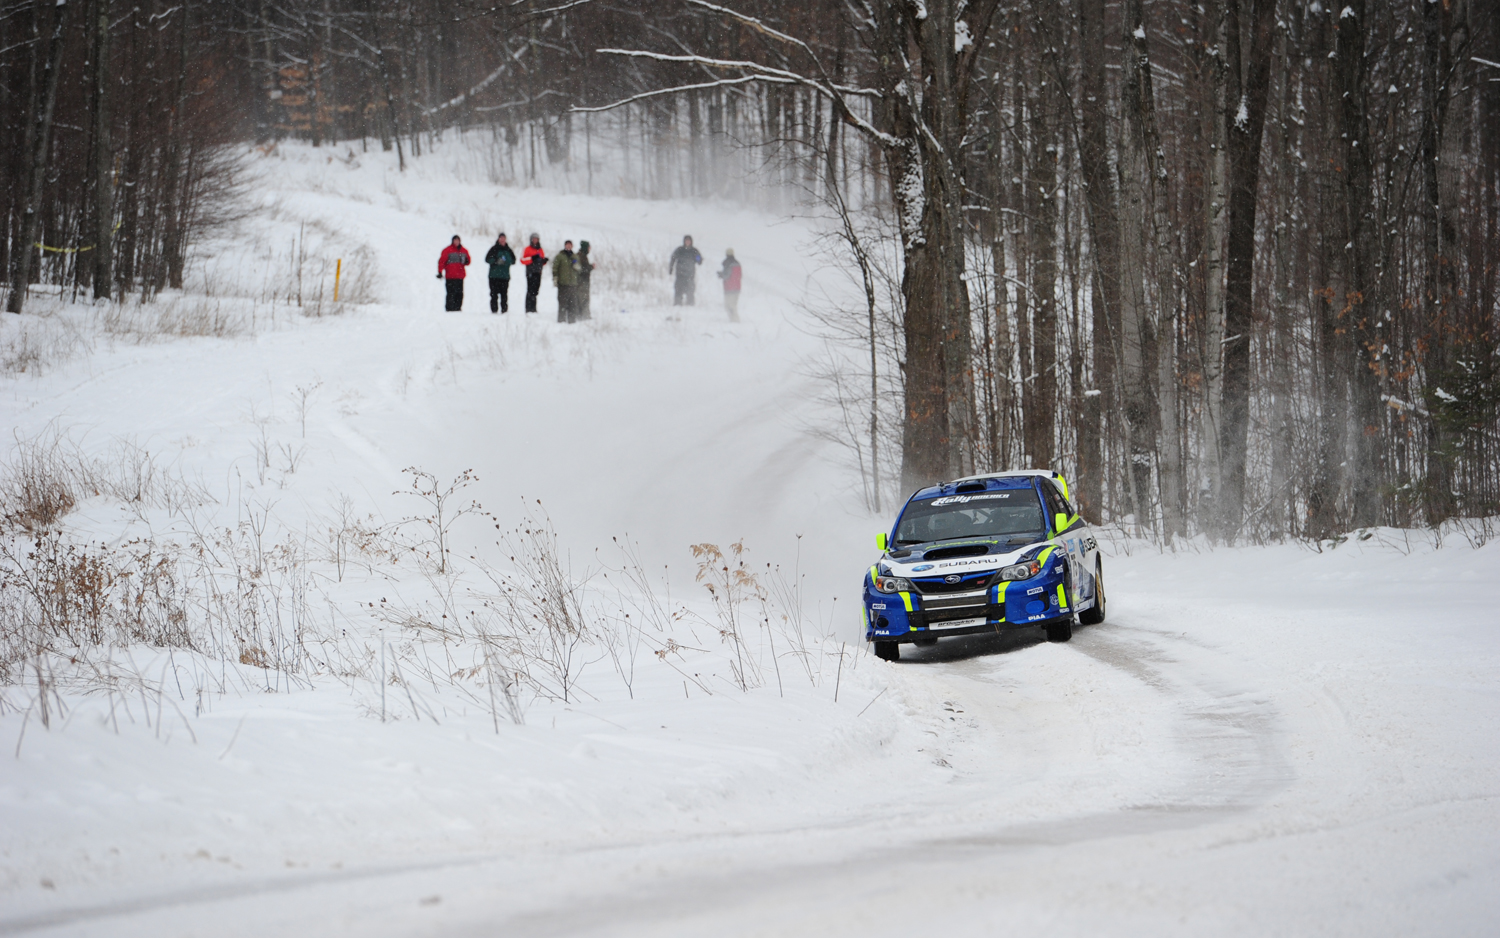 It's cold out. Warm up with some rally racing.